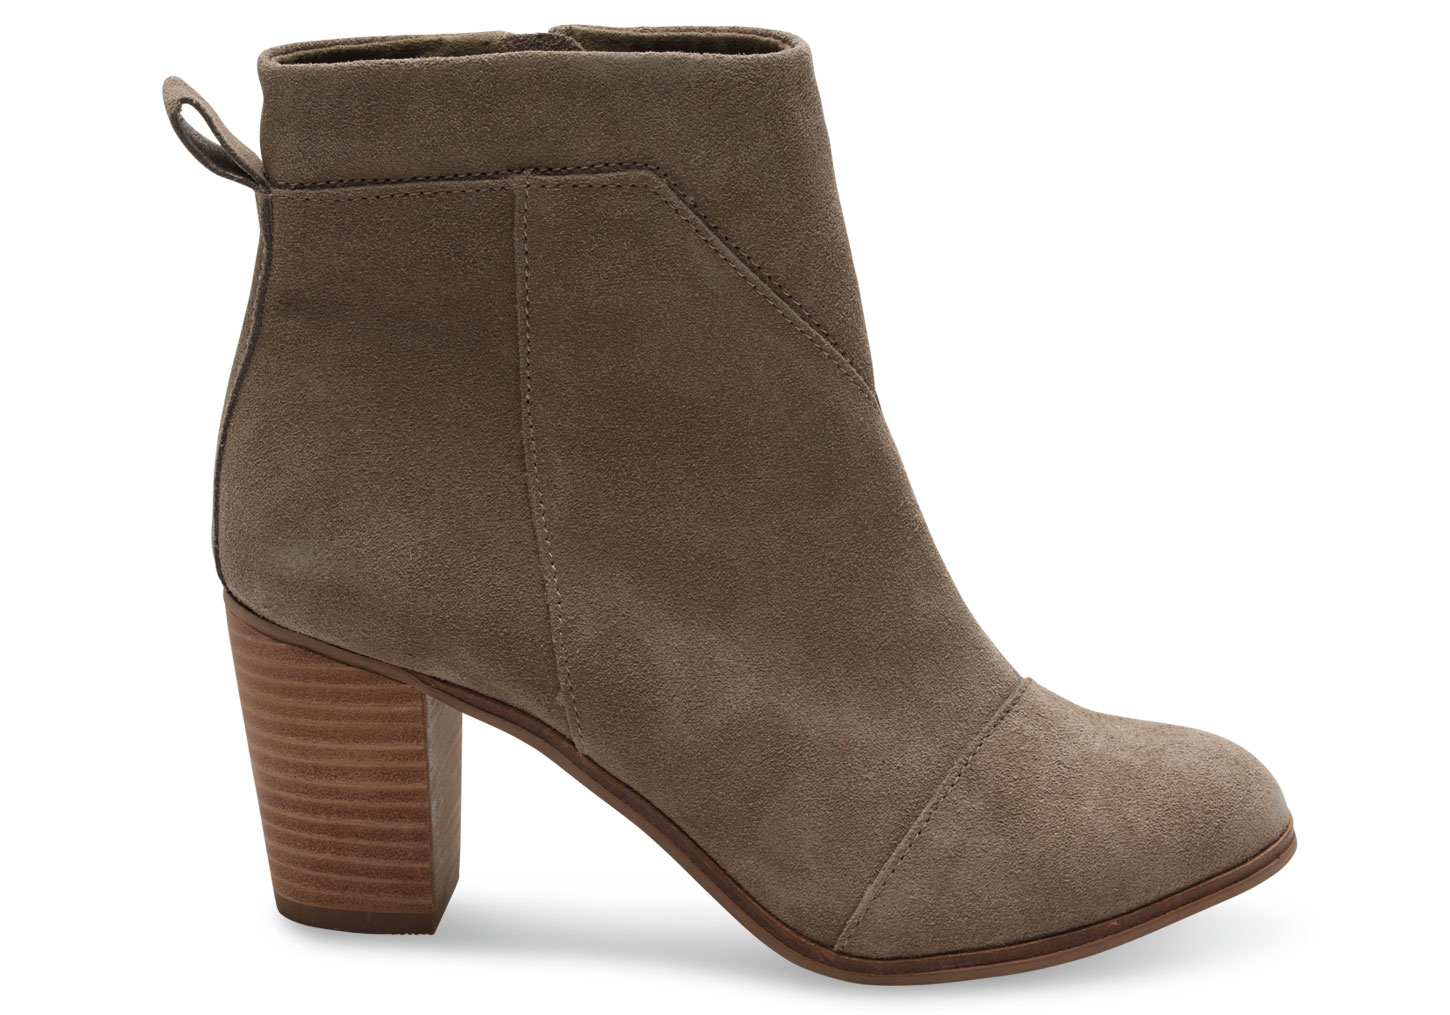 Women's Booties. Elevate your look in booties that will complete your signature style. Shop a wide selection of booties for women in suede, leather, solids, .